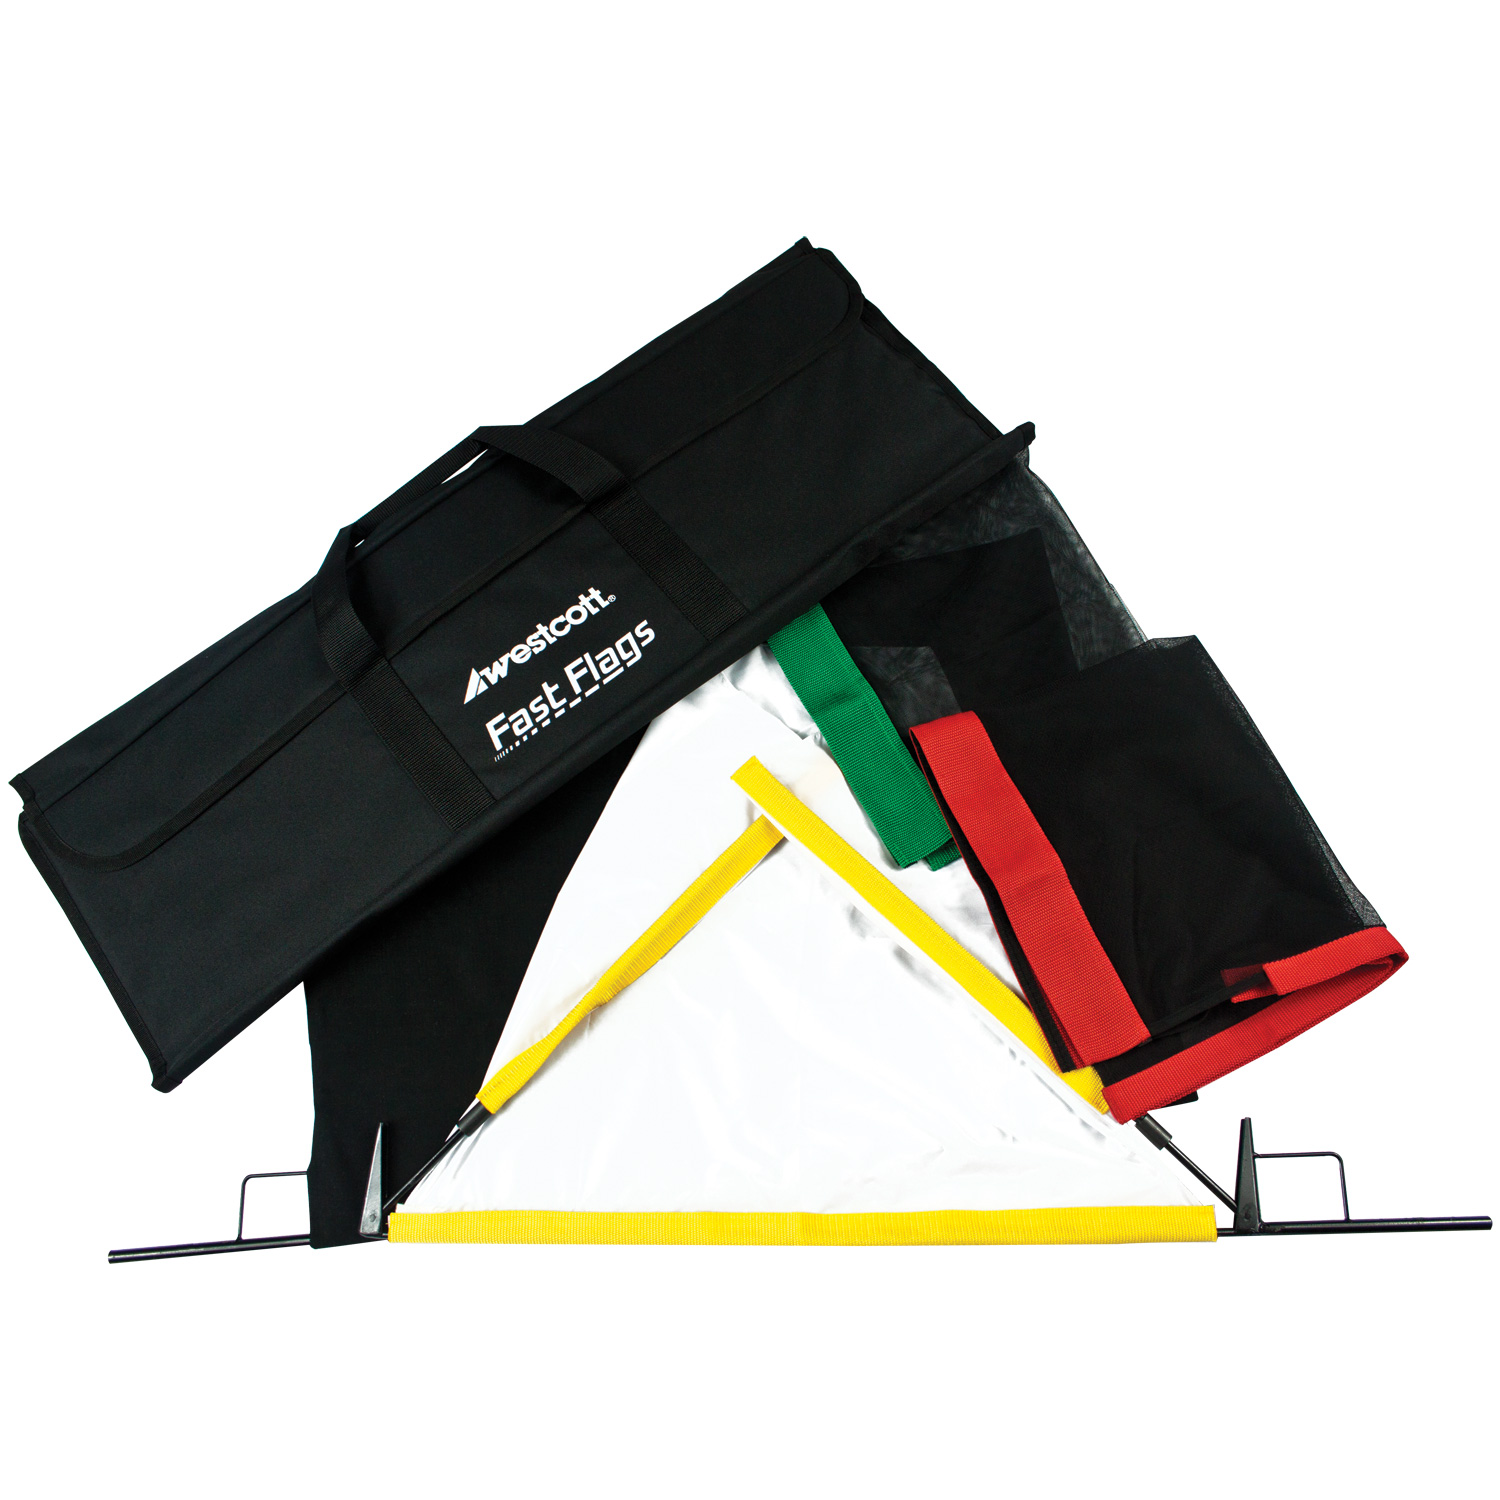 24-in. x 36-in. Fast Flags Kit